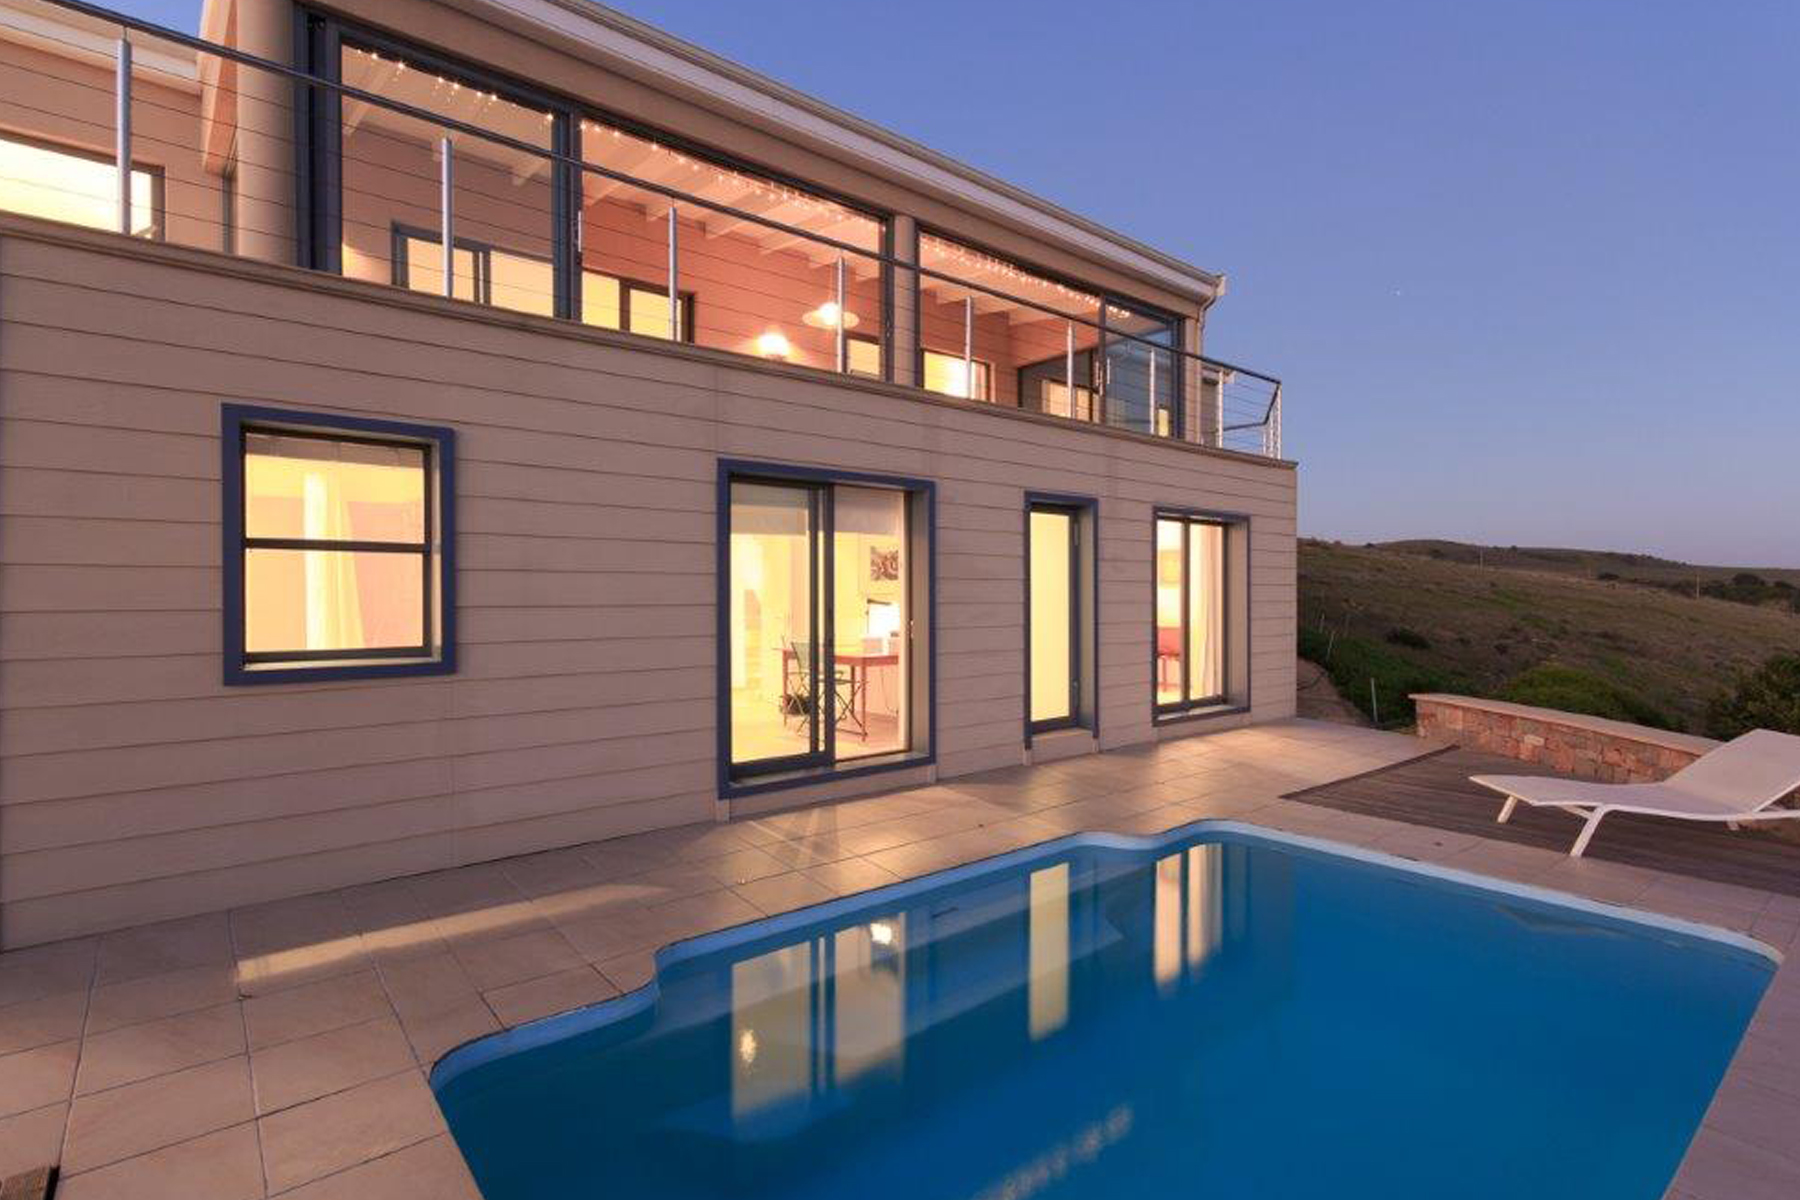 Single Family Home for Sale at Knysna Knysna, Western Cape, South Africa